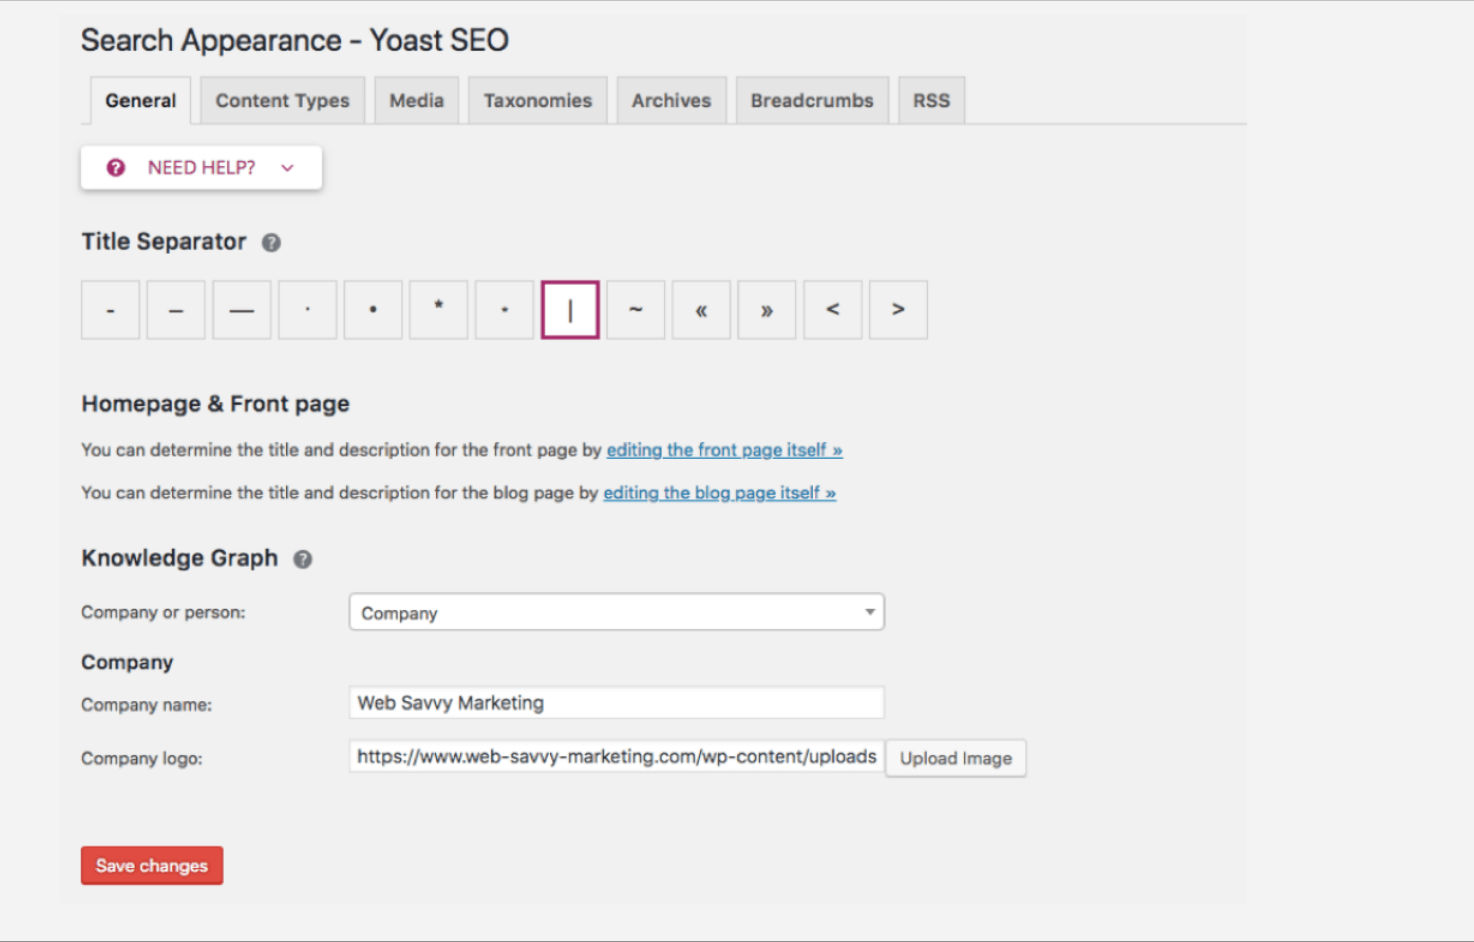 Search Appearance - Yoast SEO